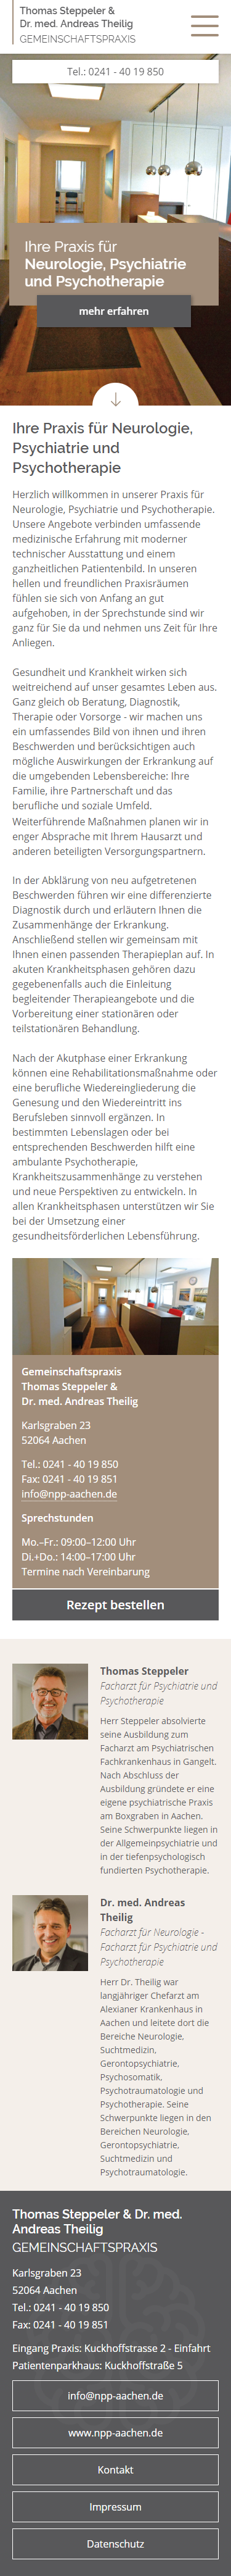 Mobile Homepage Aachen: Gemeinschaftspraxis Thomas Steppeler & Dr. med. Andreas Theilig